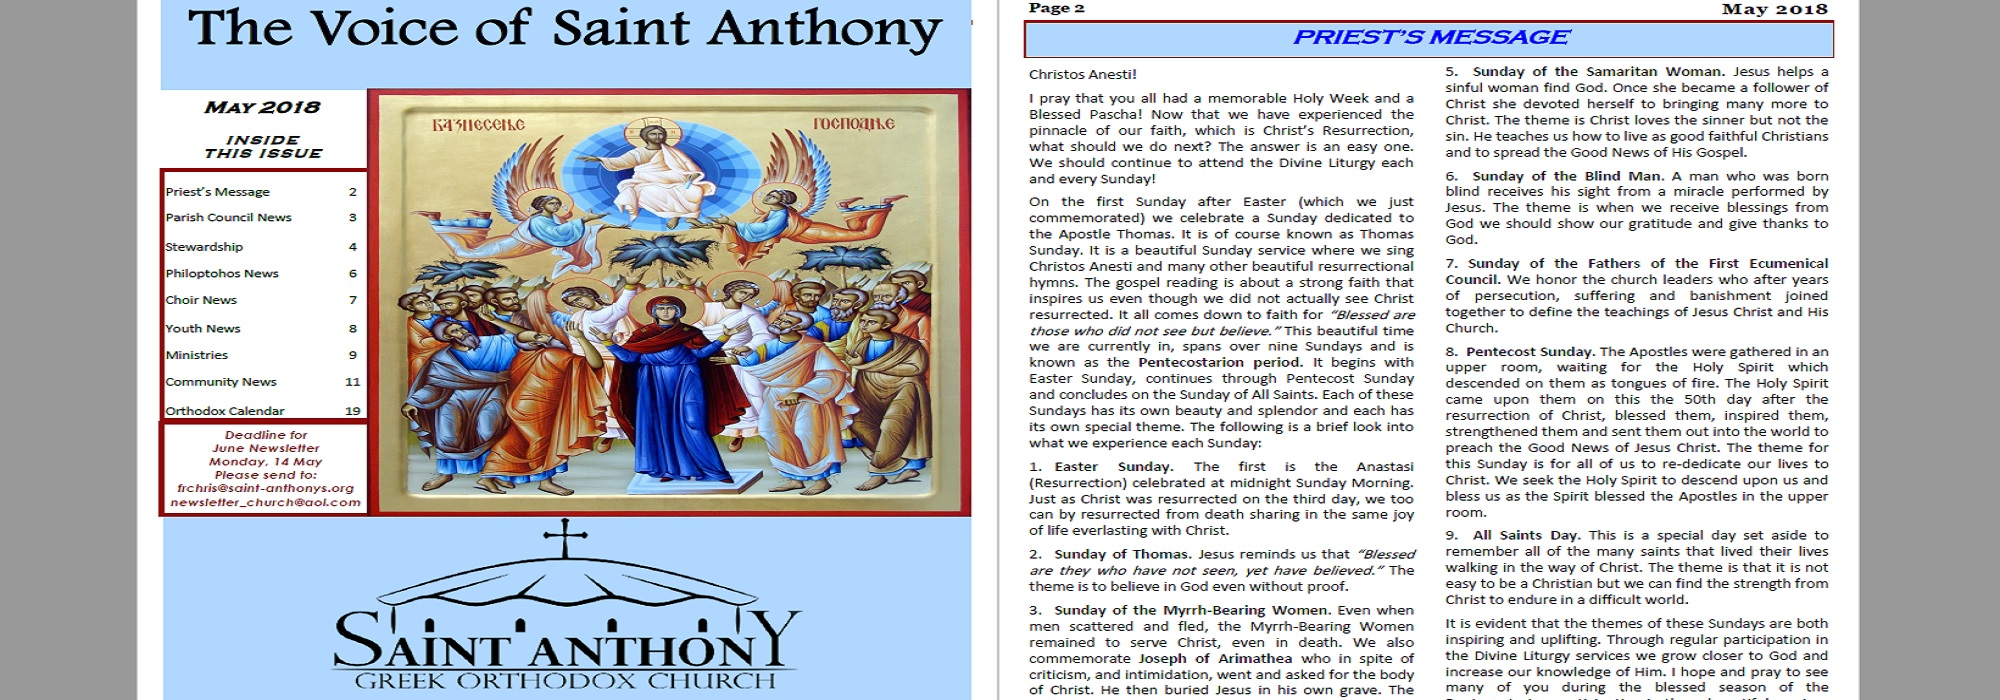 The Voice of St. Anthony